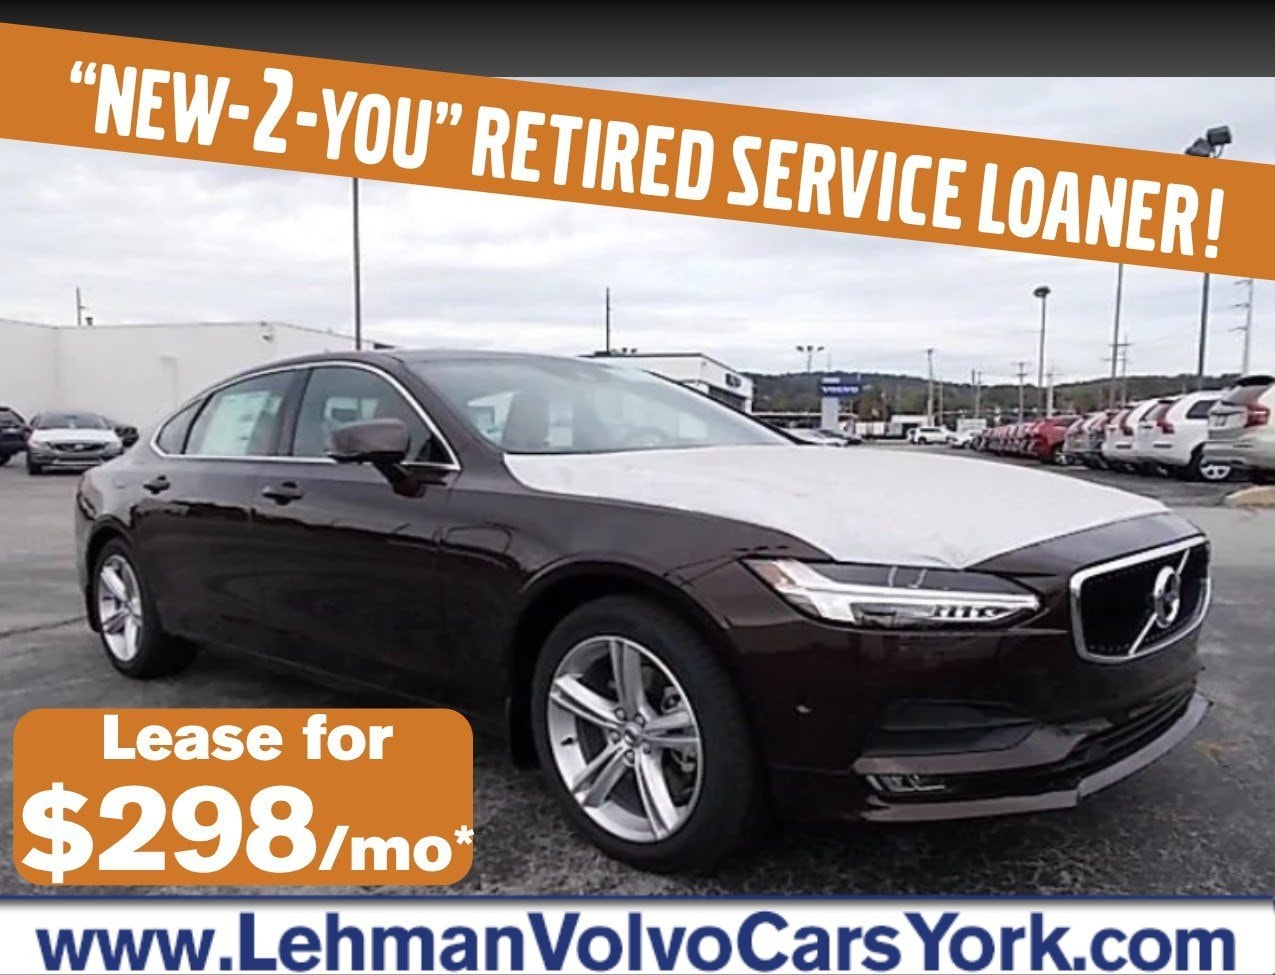 Used 2018 Volvo S90 For Sale York Pa Vin Lvy982mk6jp026790